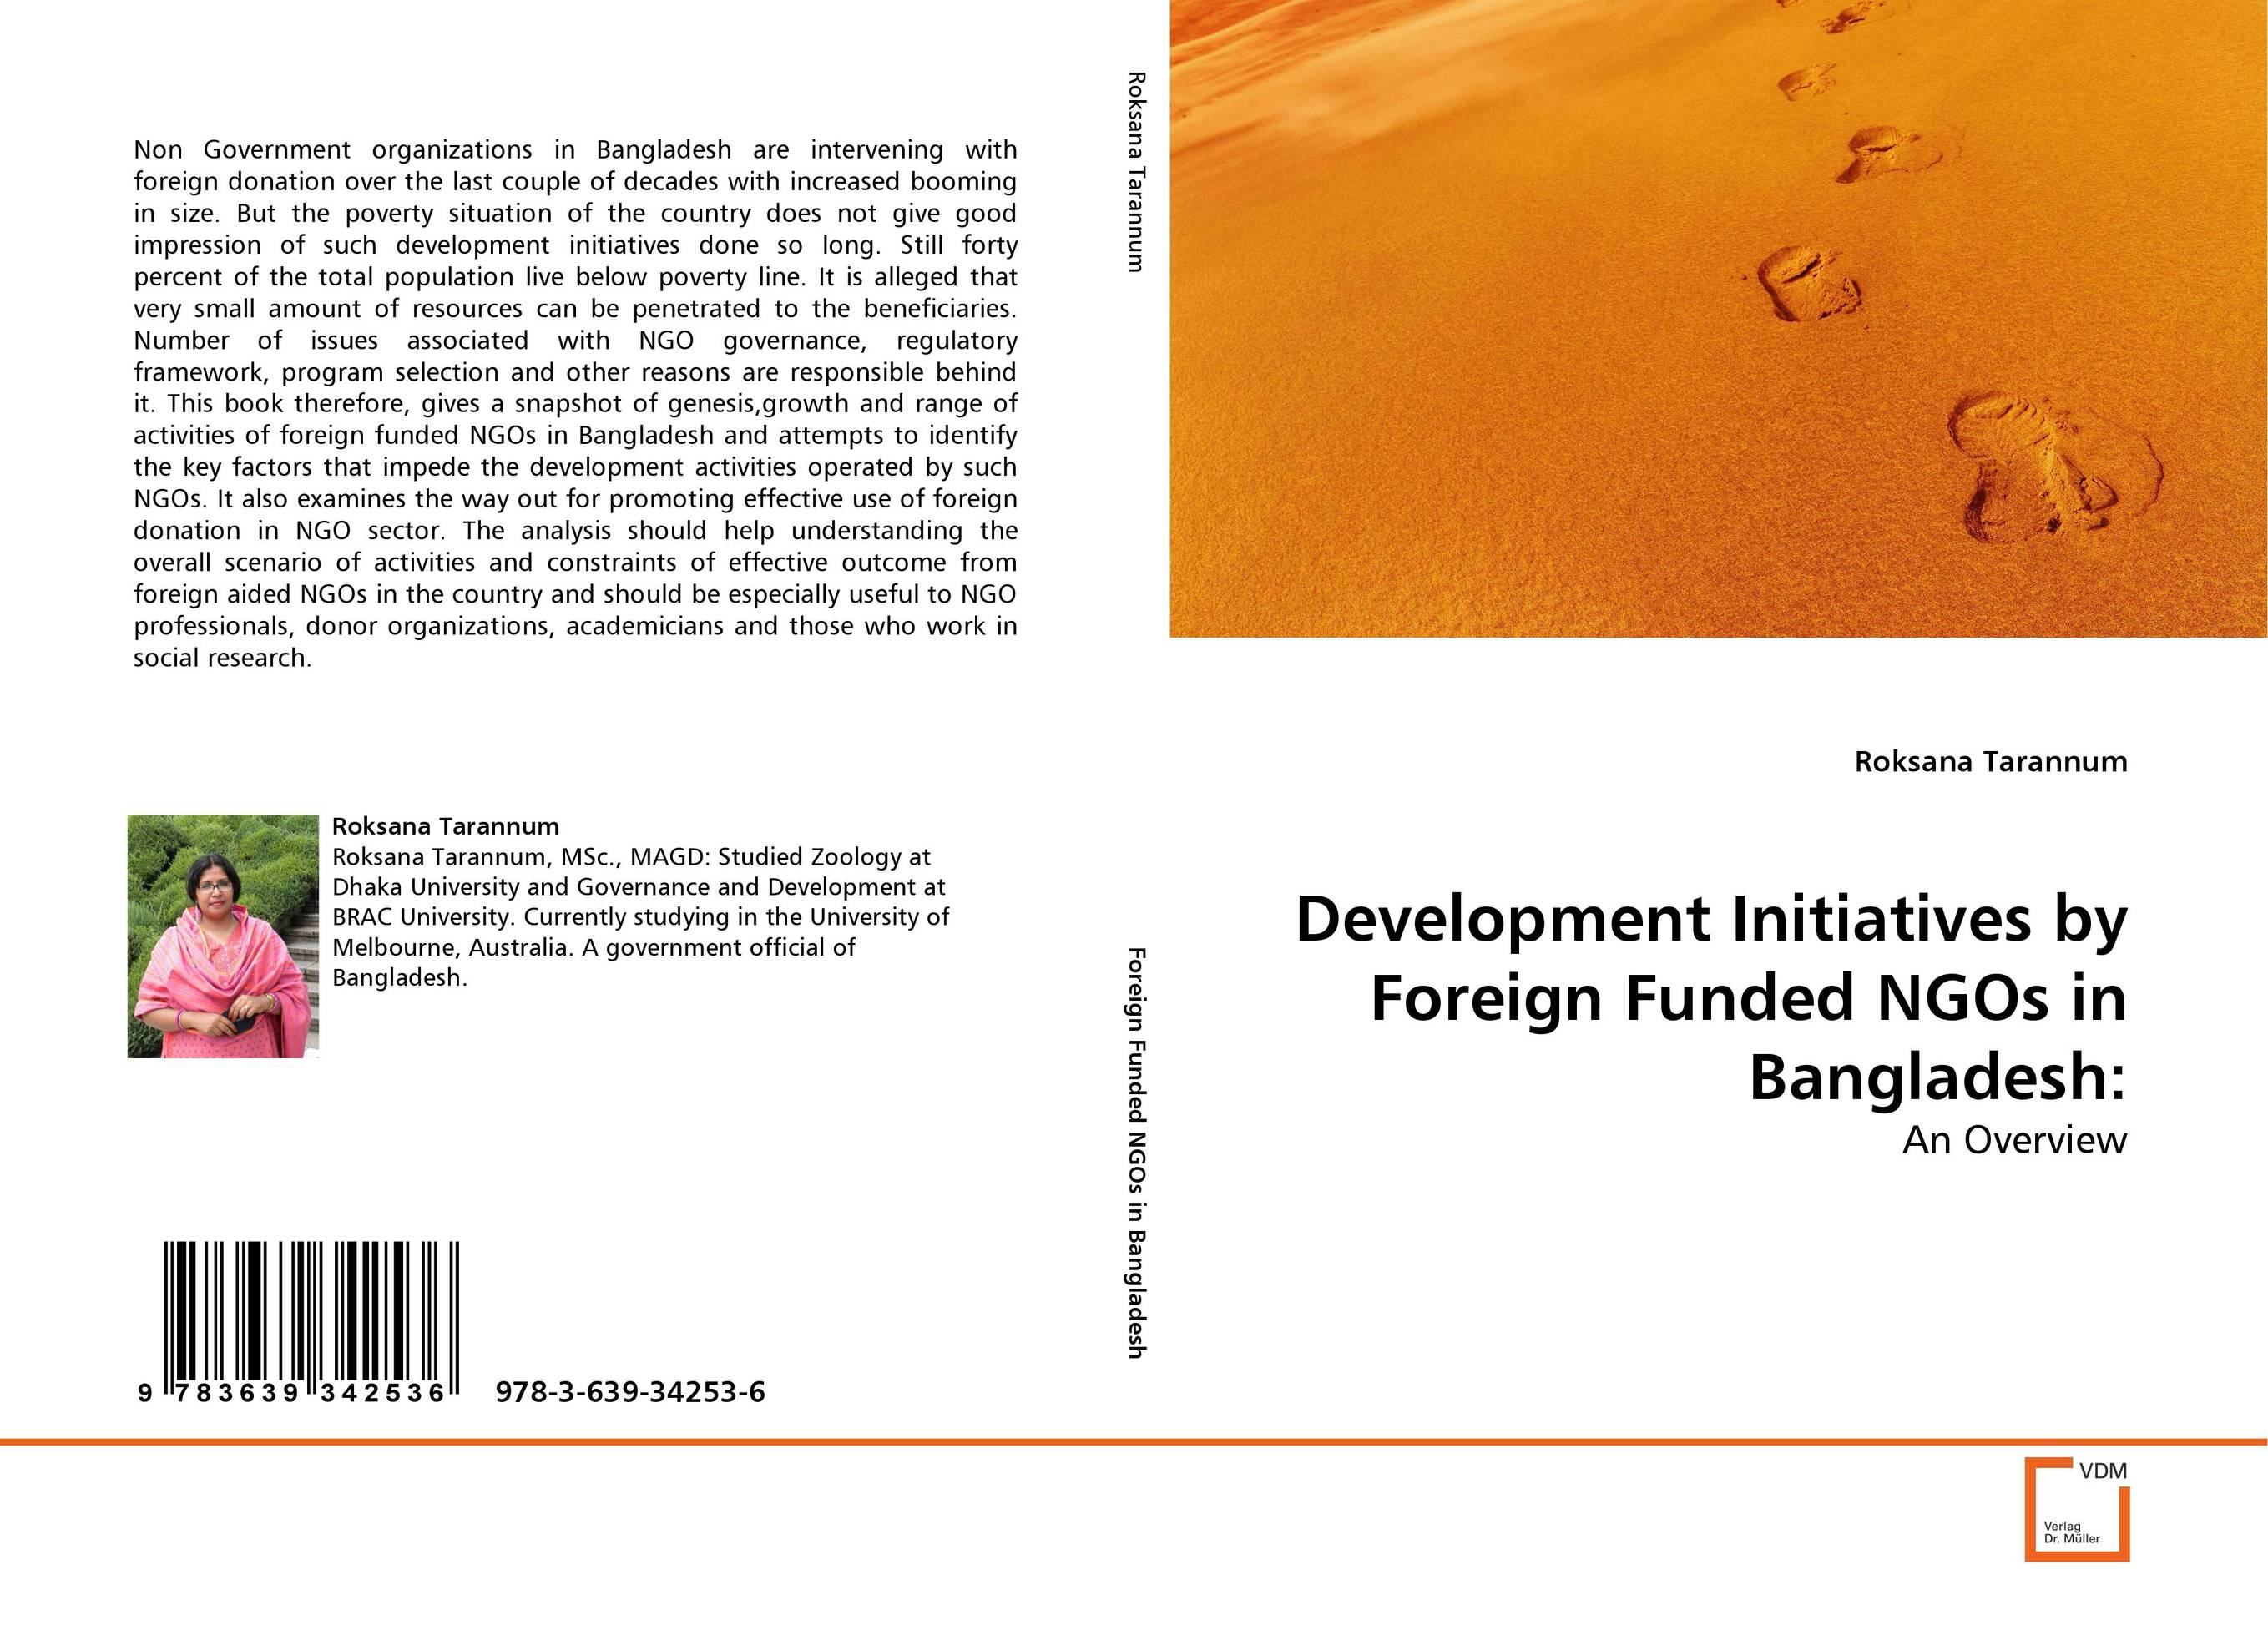 Development Initiatives by Foreign Funded NGOs in Bangladesh: ngos